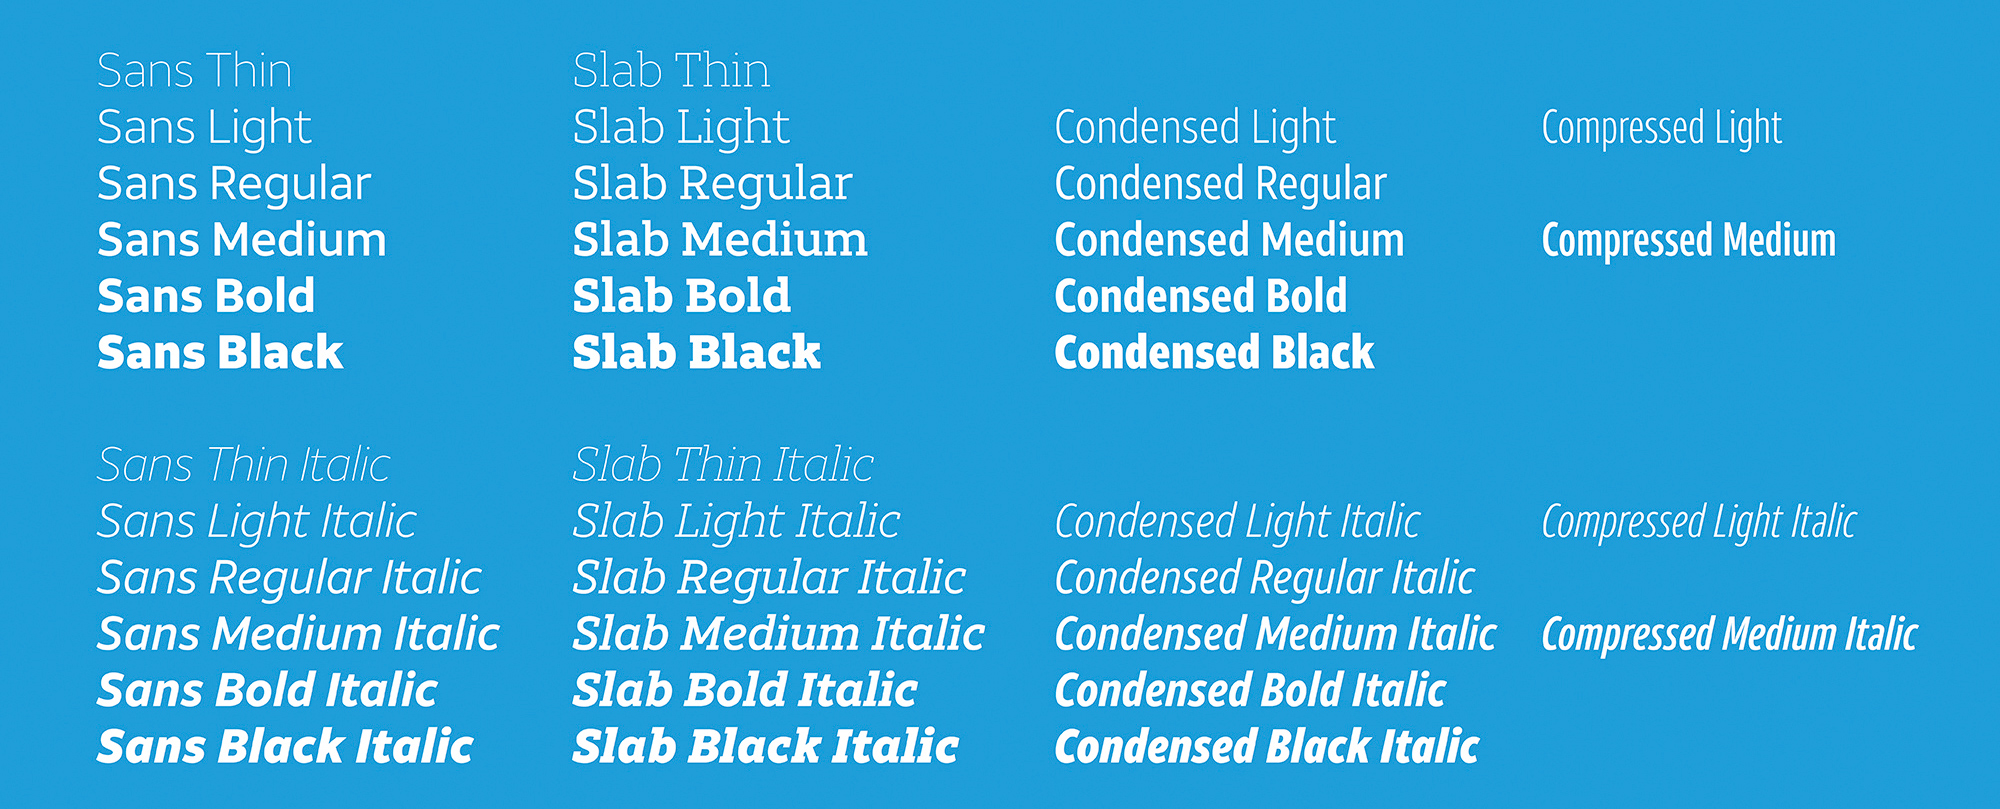 Brand typography: AT&T's extensive brand font